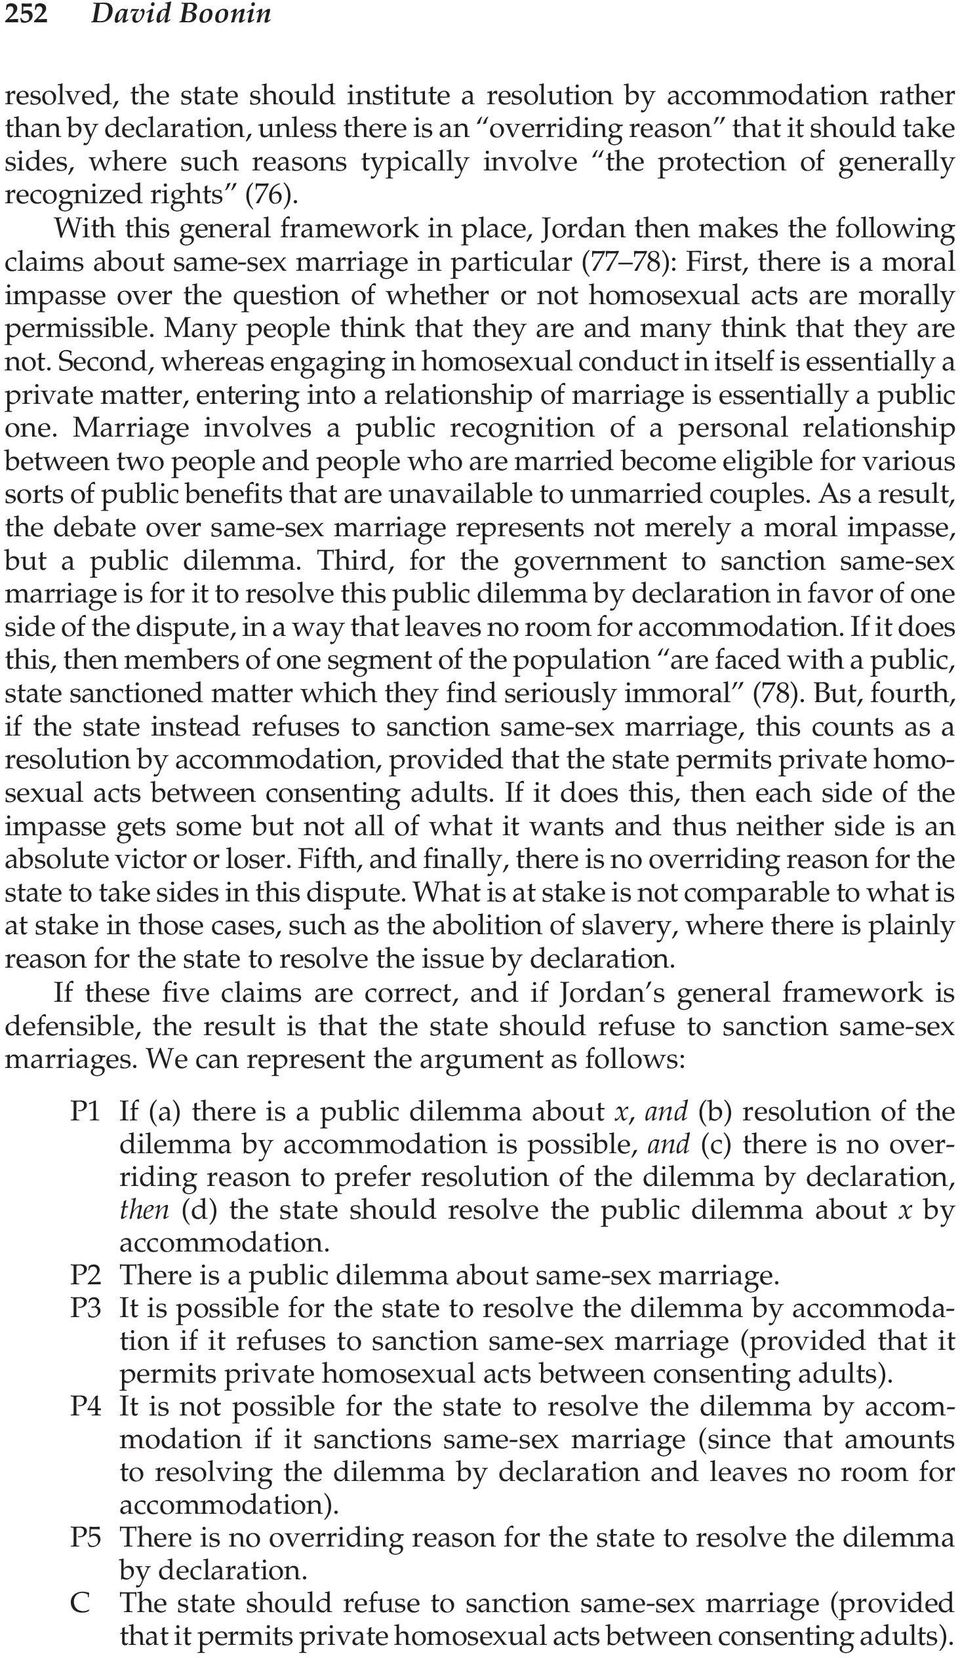 With this general framework in place, Jordan then makes the following claims about same-sex marriage in particular (77 78): First, there is a moral impasse over the question of whether or not